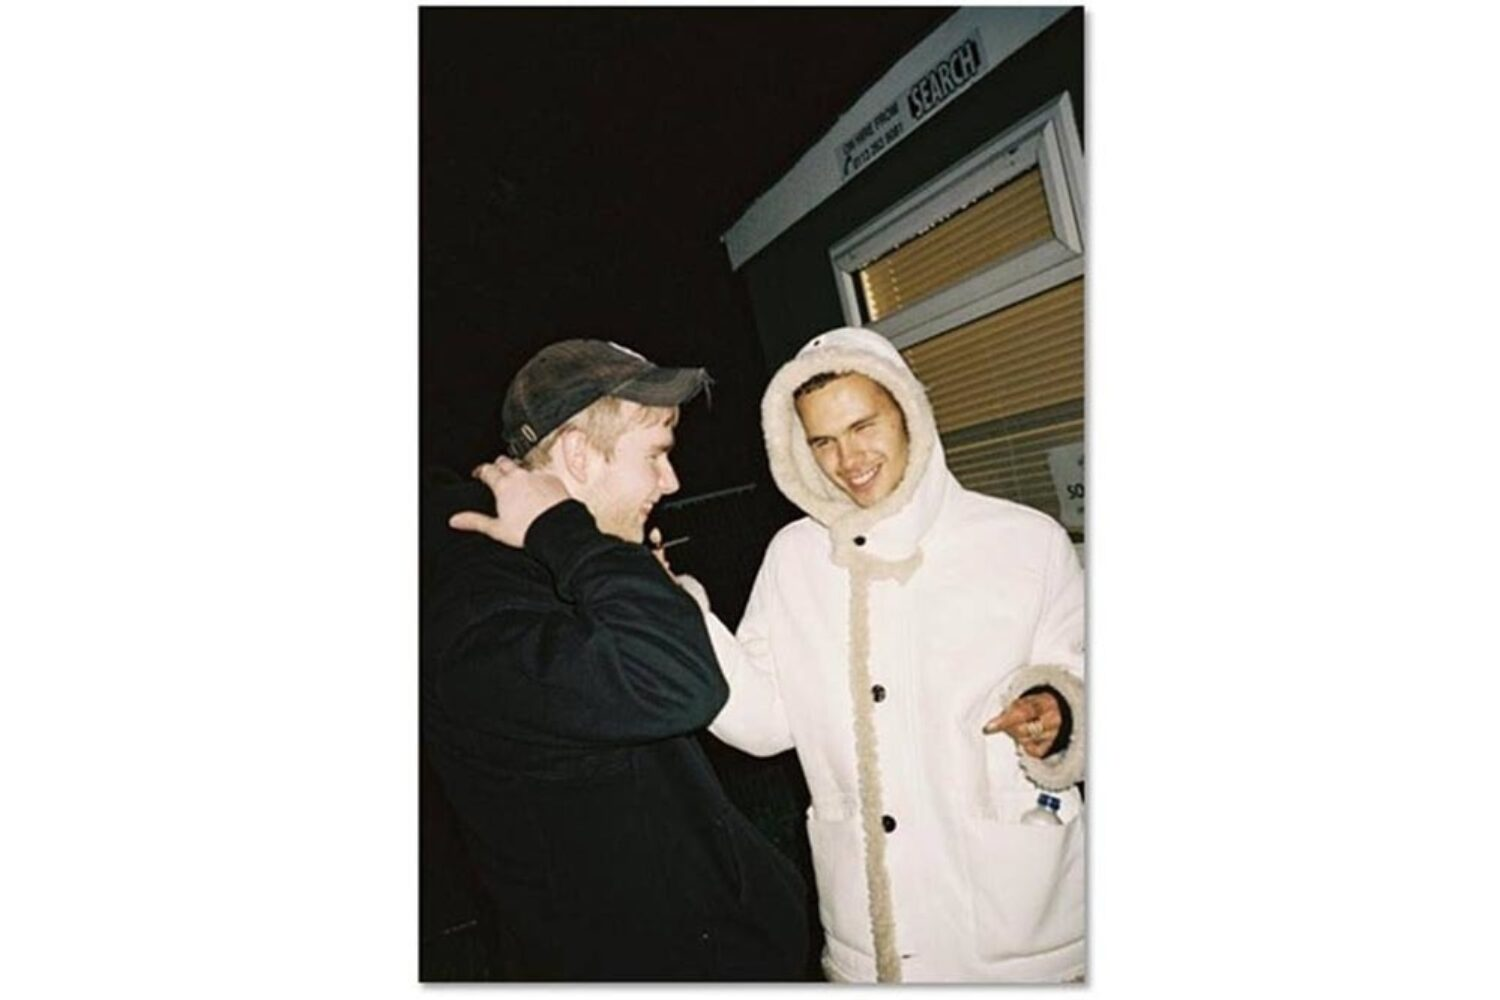 Mura Masa and slowthai team up for new track 'Deal Wiv It'